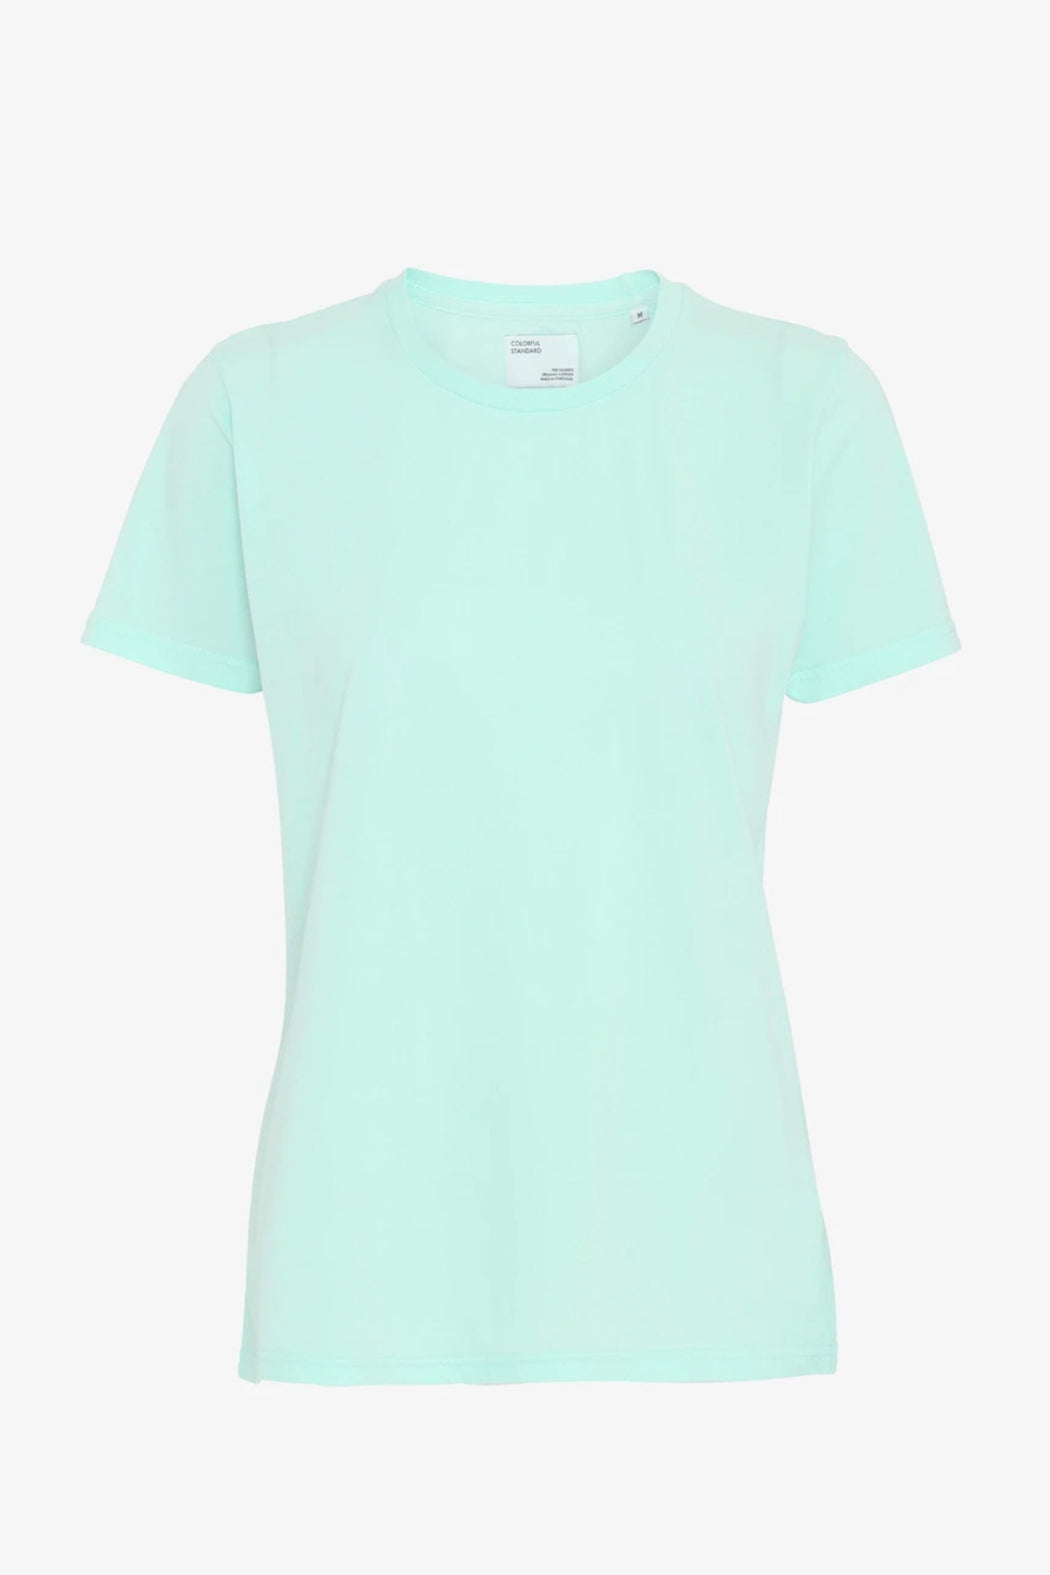 WOMAN LIGHT ORGANIC Tee light aqua